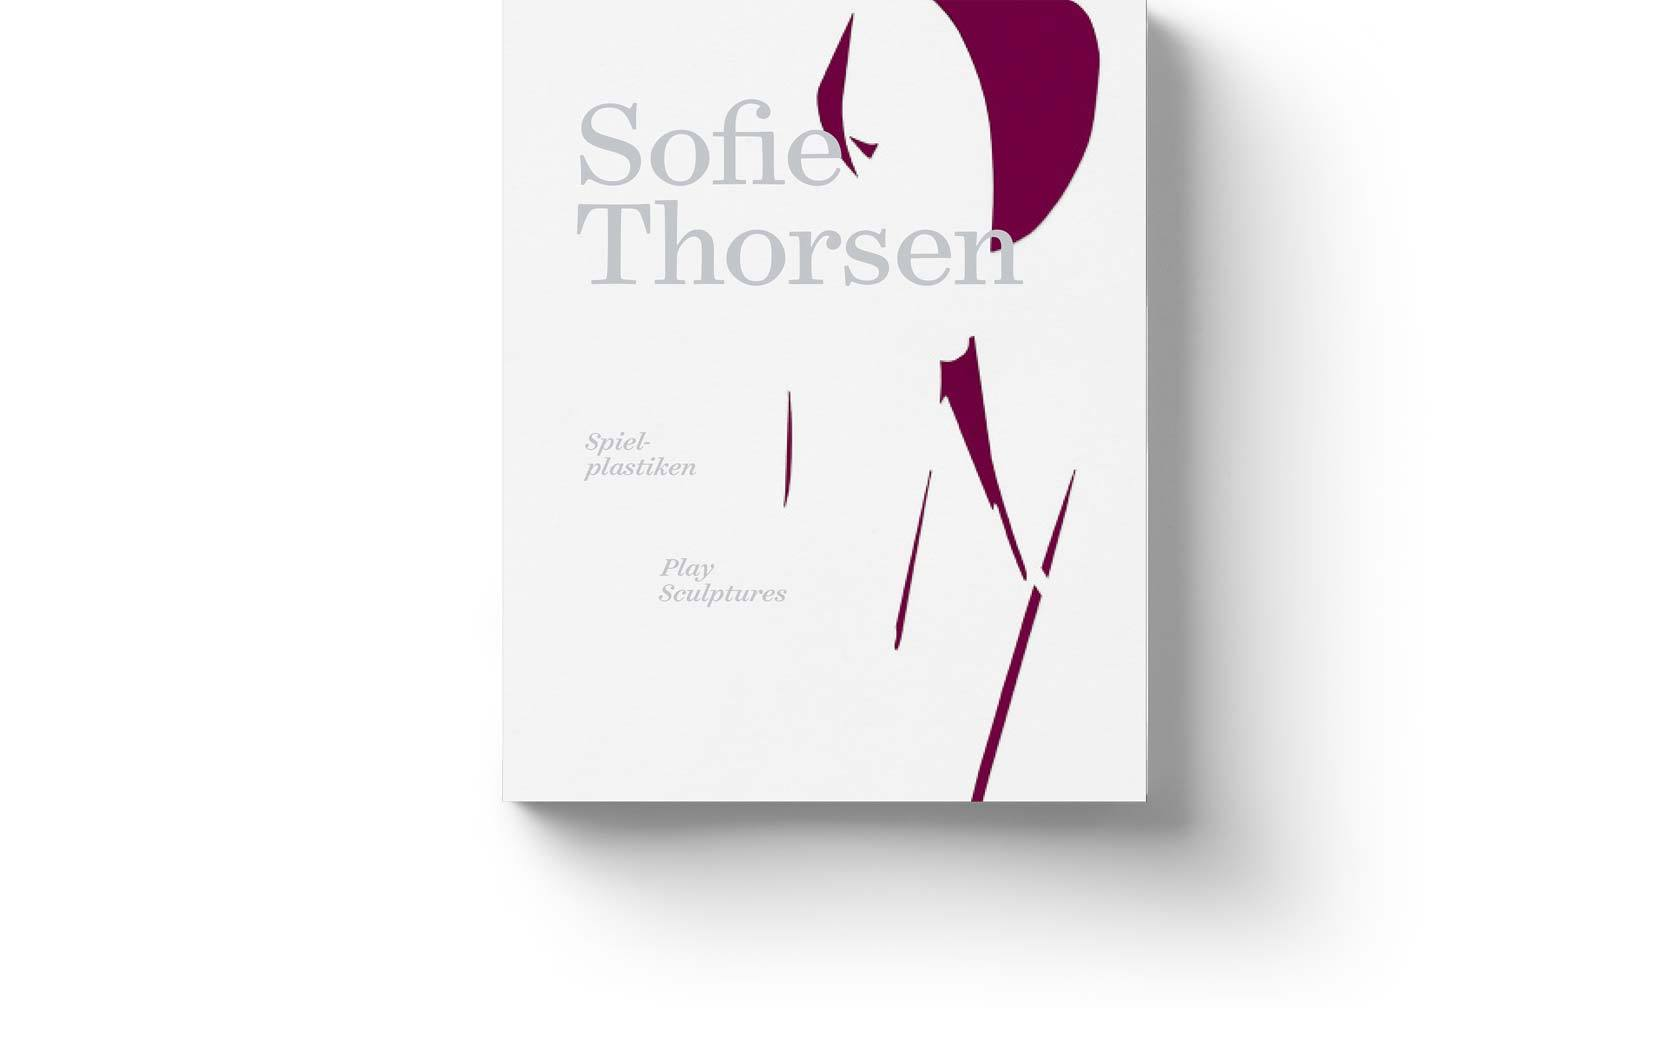 Sofie Thorsen Publication